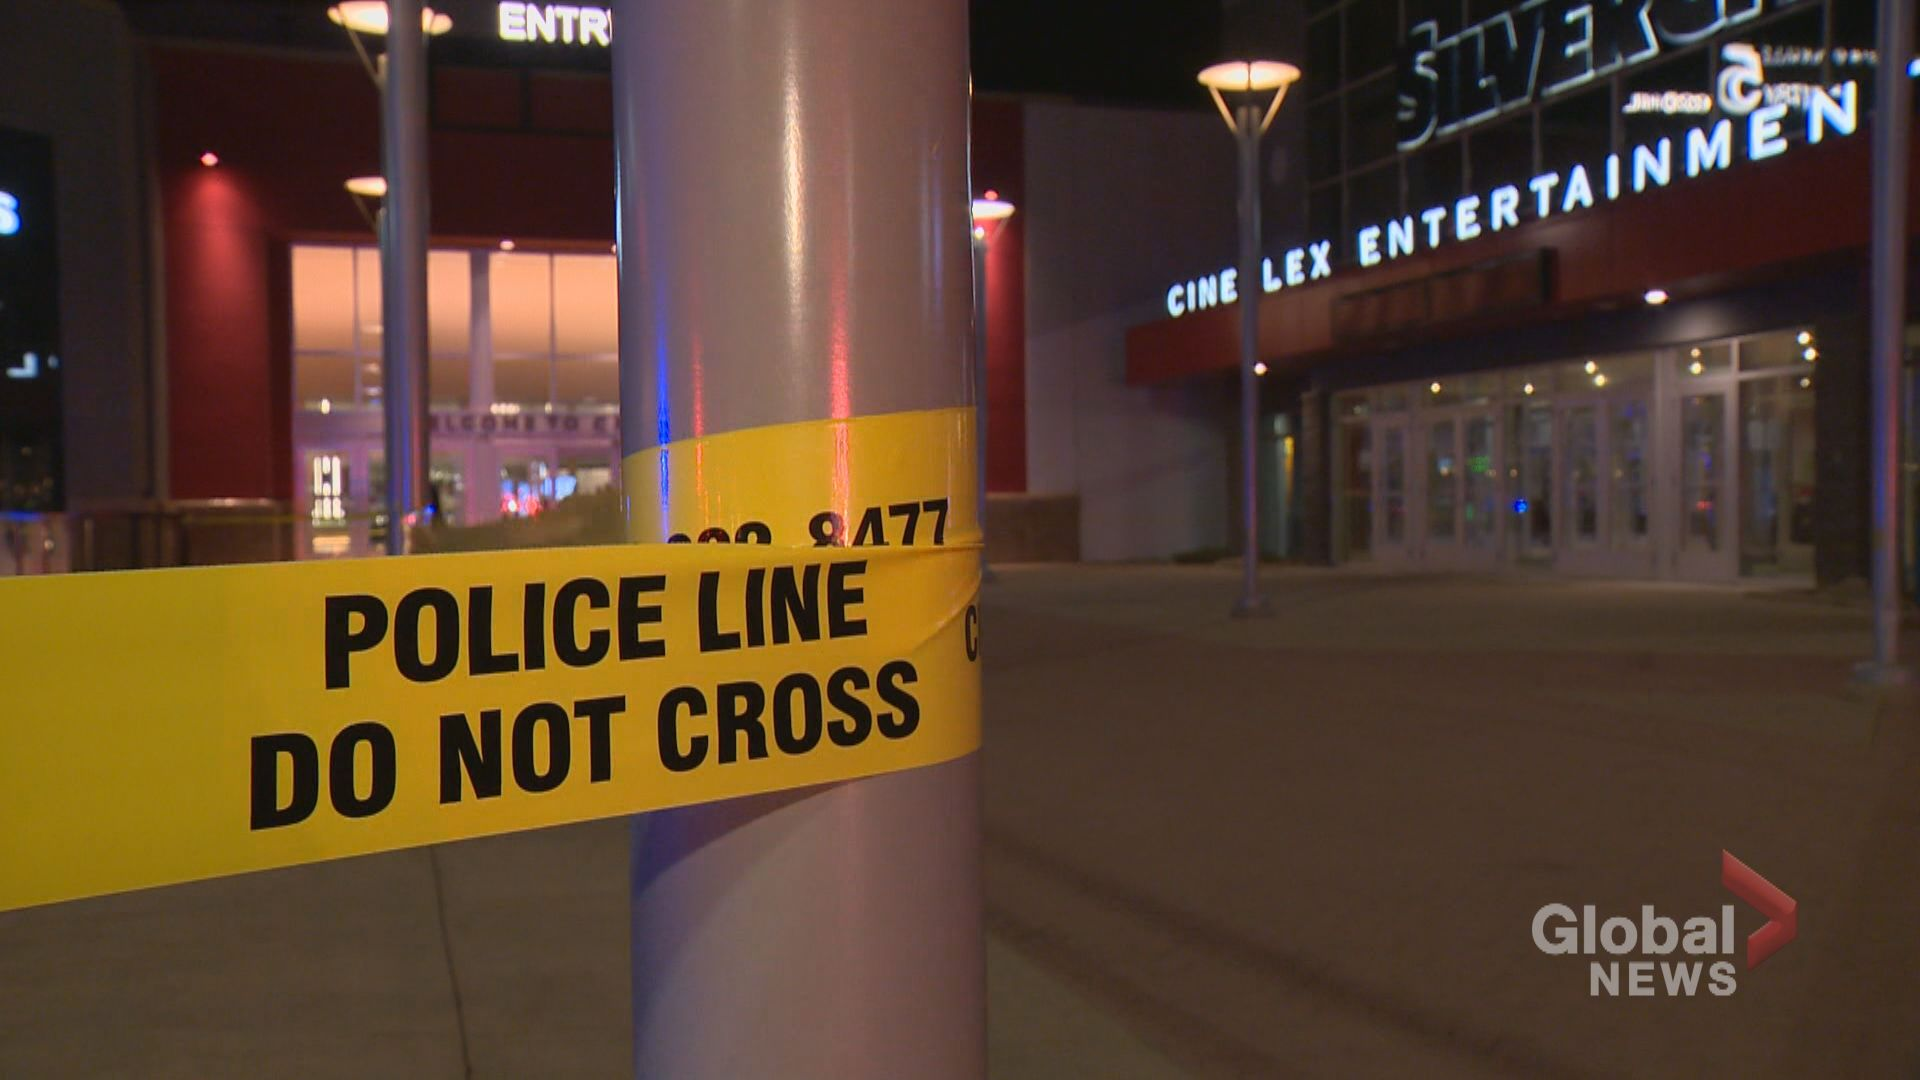 Security concerns voiced following shooting at CrossIron Mills mall